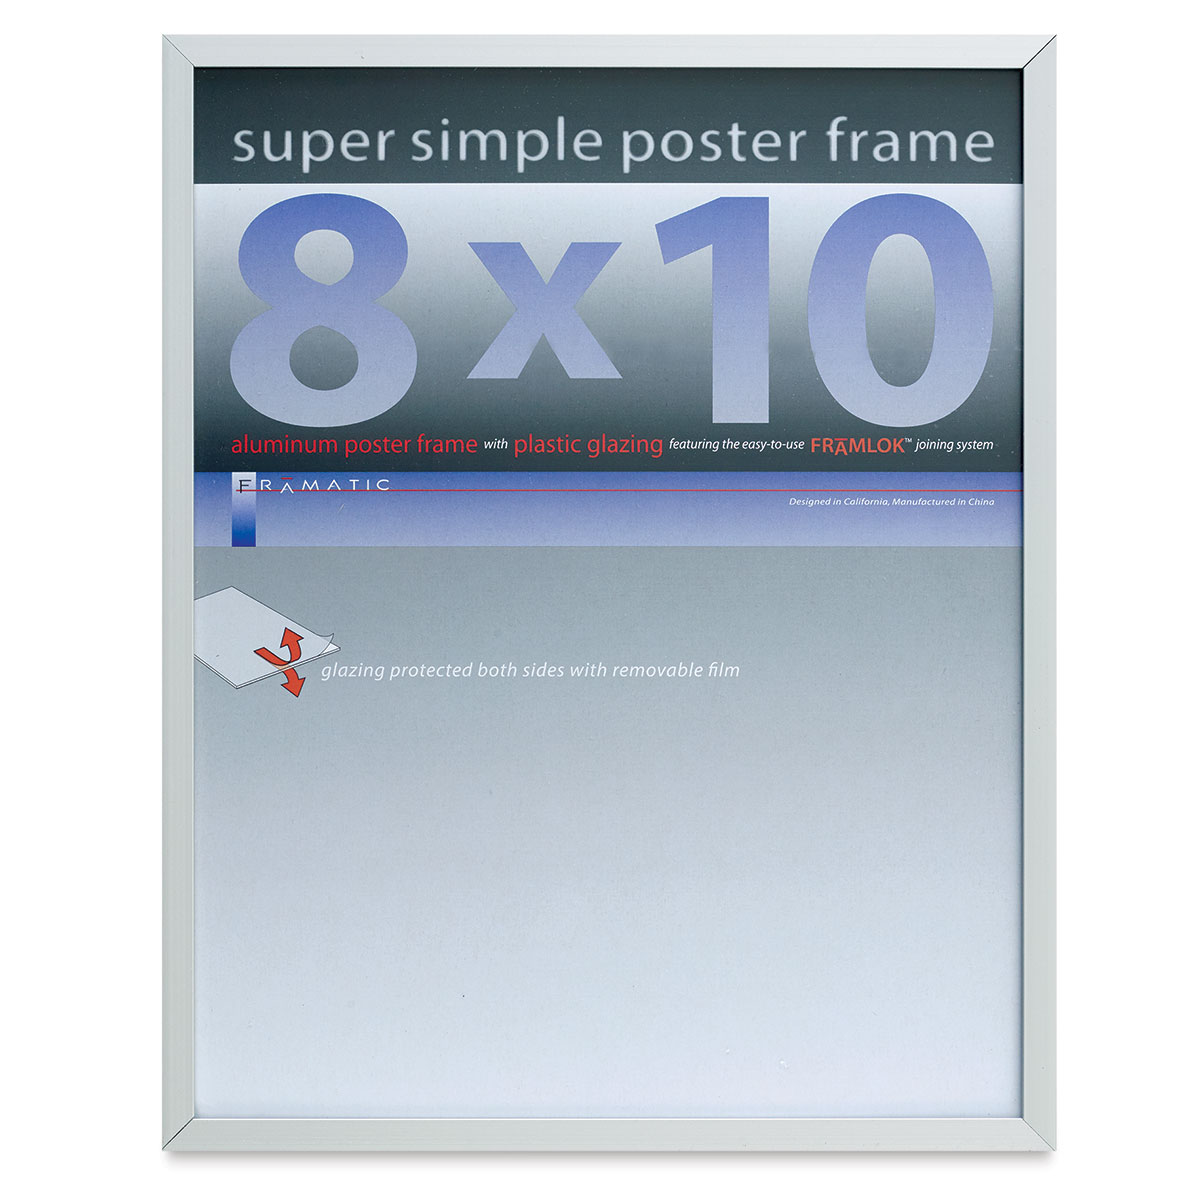 Framatic Super Simple Poster Frame - Silver, 8 x 10